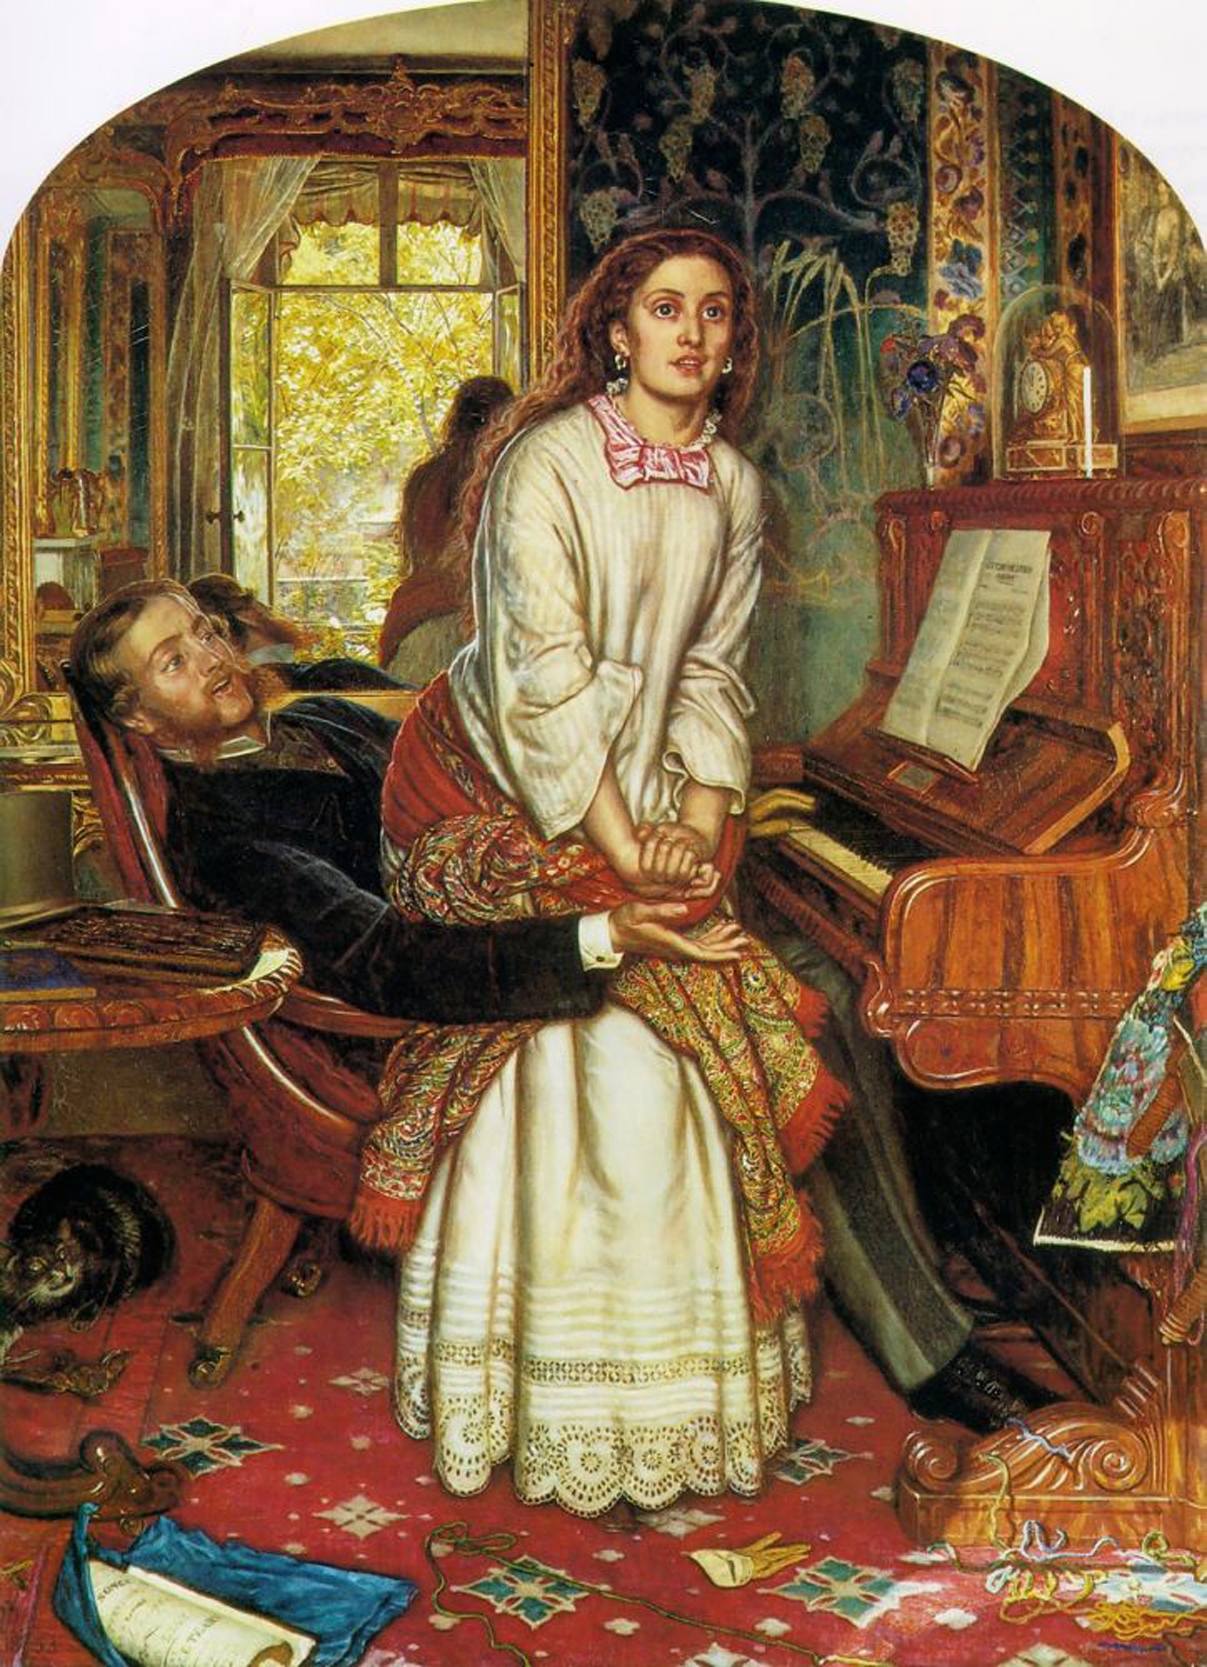 https://uploads1.wikiart.org/images/william-holman-hunt/the-awakening-conscience-1853.jpg